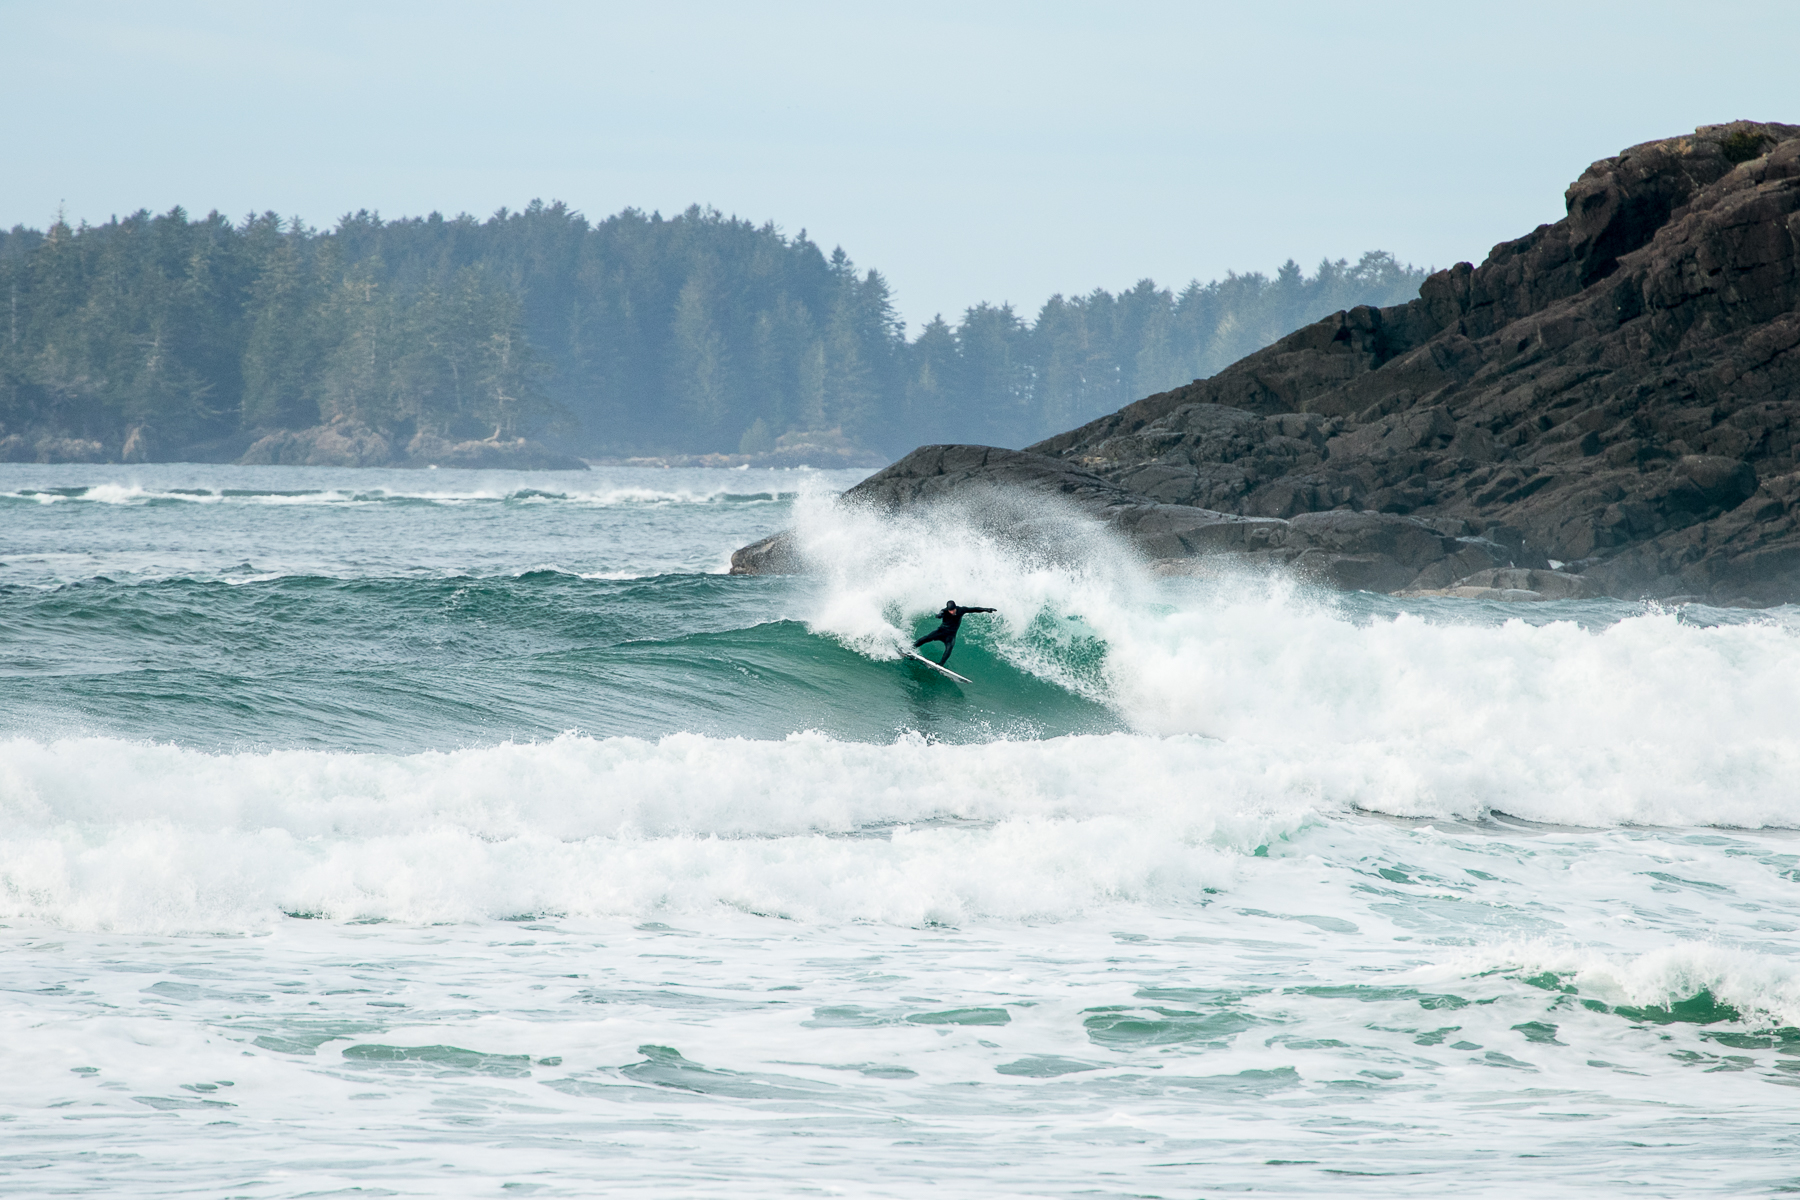 tofino_surf_photography_sepp_bruhwiler_cox_bay_canada_Vancouver_Isand_2018.jpg